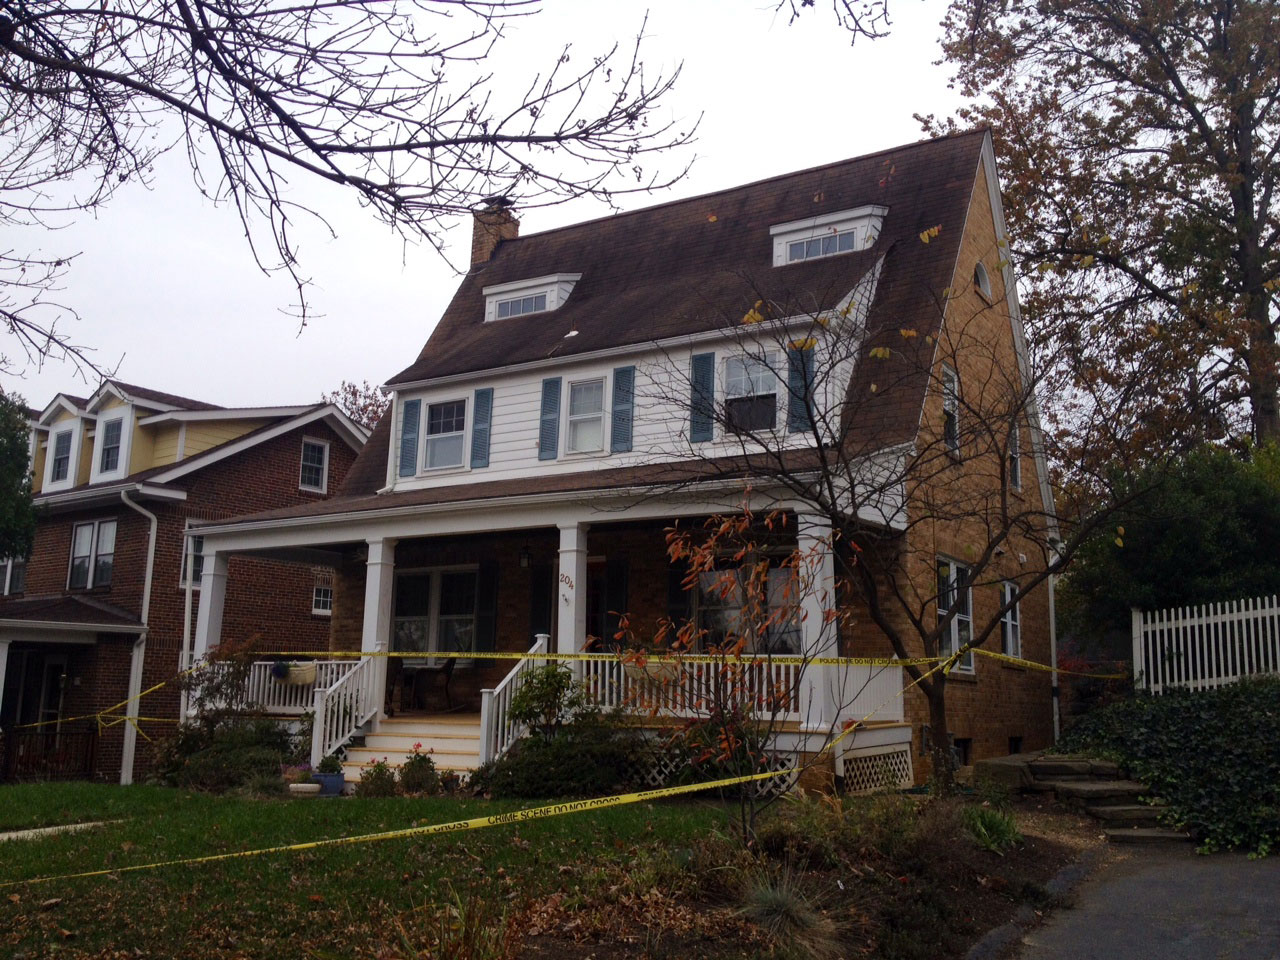 Council of Governments official found shot to death in Alexandria home